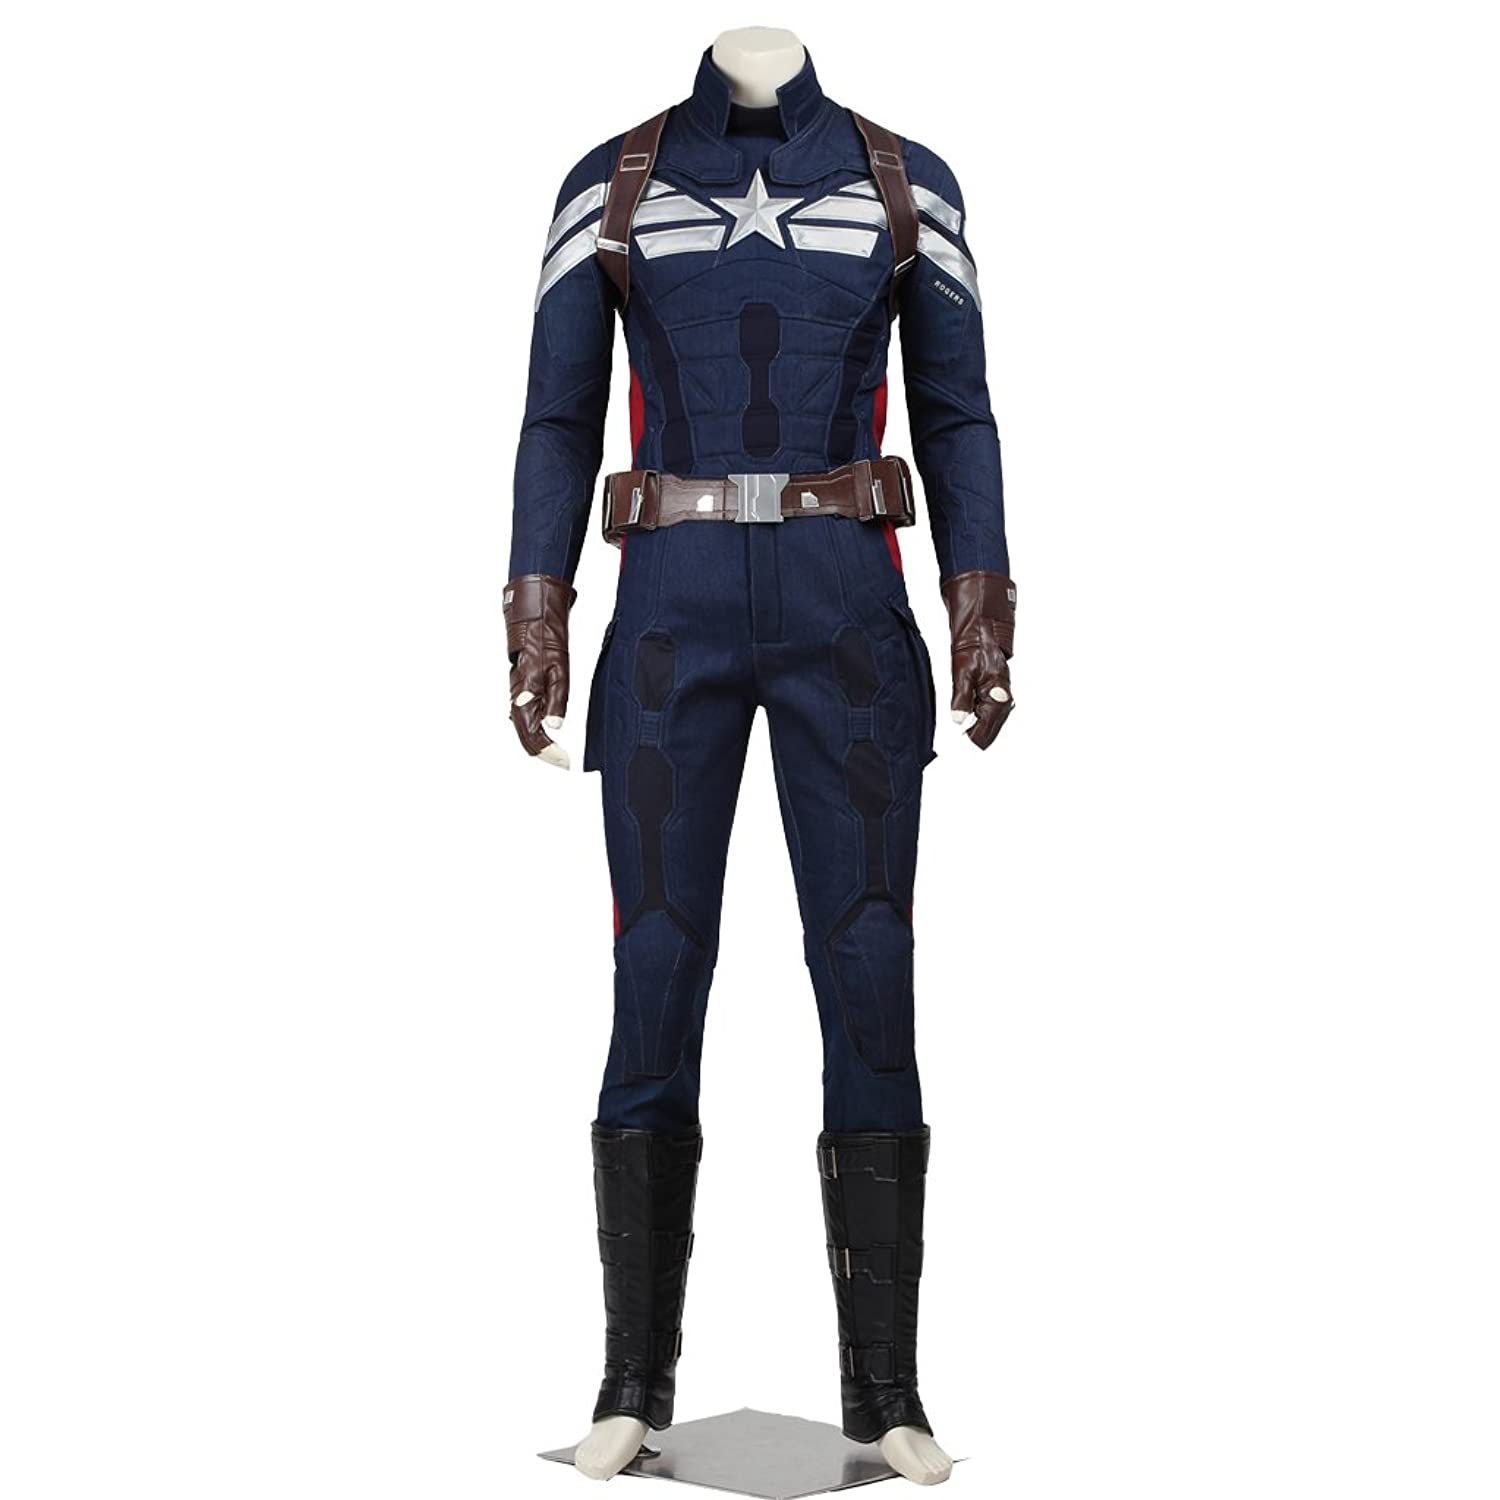 Men's Captain America: The Winter Soldier Cosplay Costume - DeluxeAdultCostumes.com